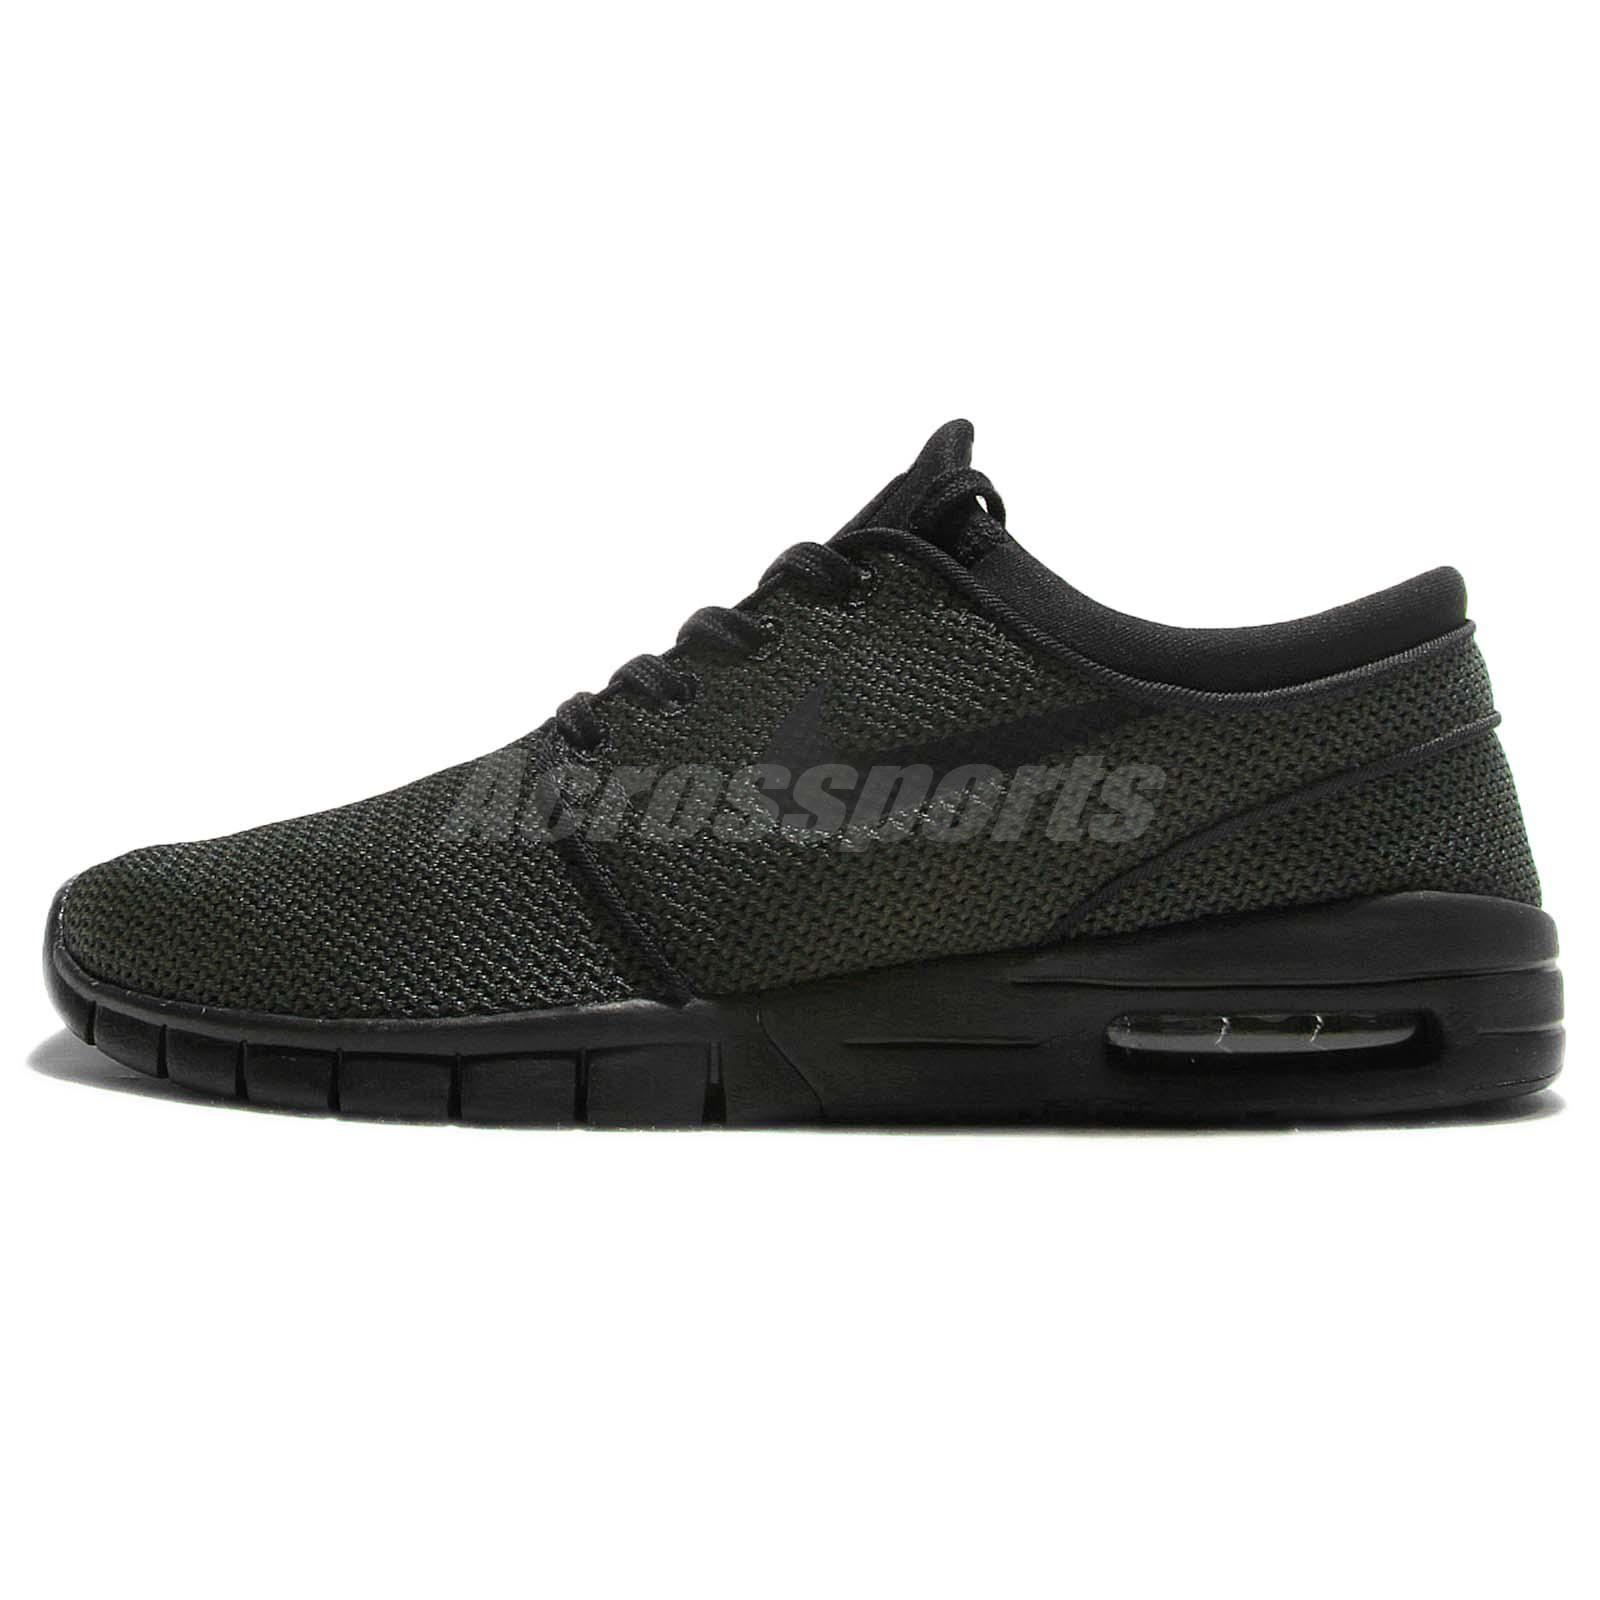 Nike Stefan Janoski Max Black Green Men Skateboarding Shoes Sneakers 631303 013